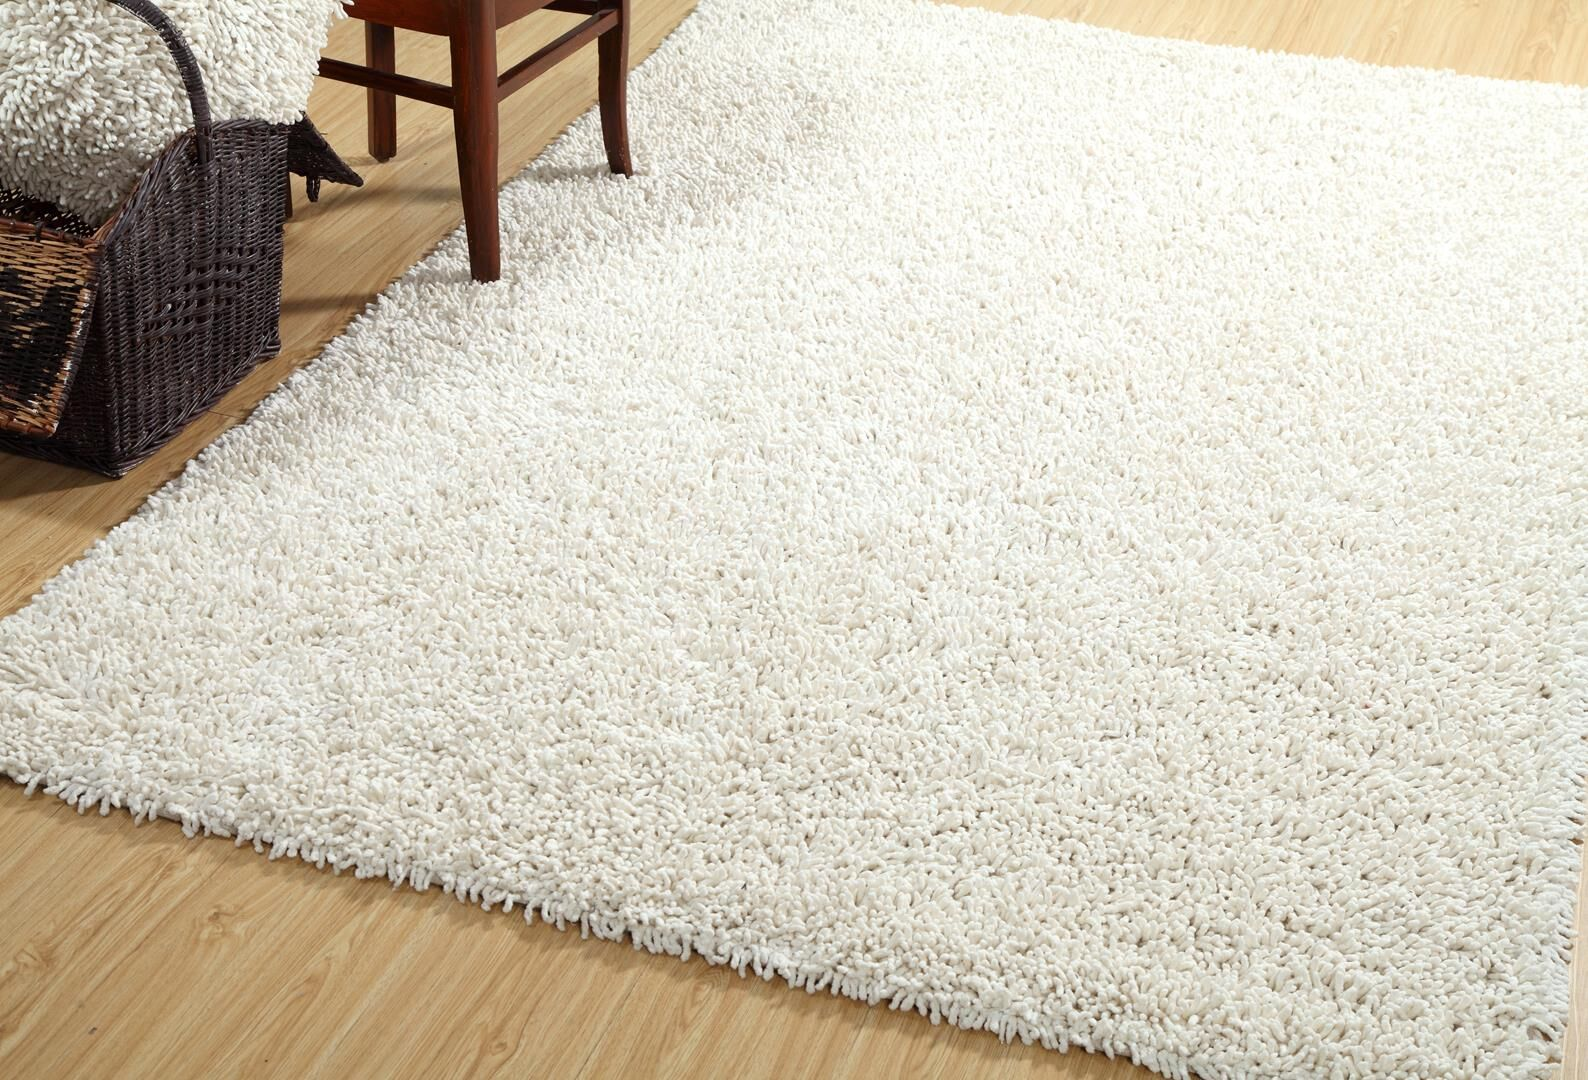 One-of-a-Kind Polivy Shag Silky Hand Woven Cotton Ivory Are Rug